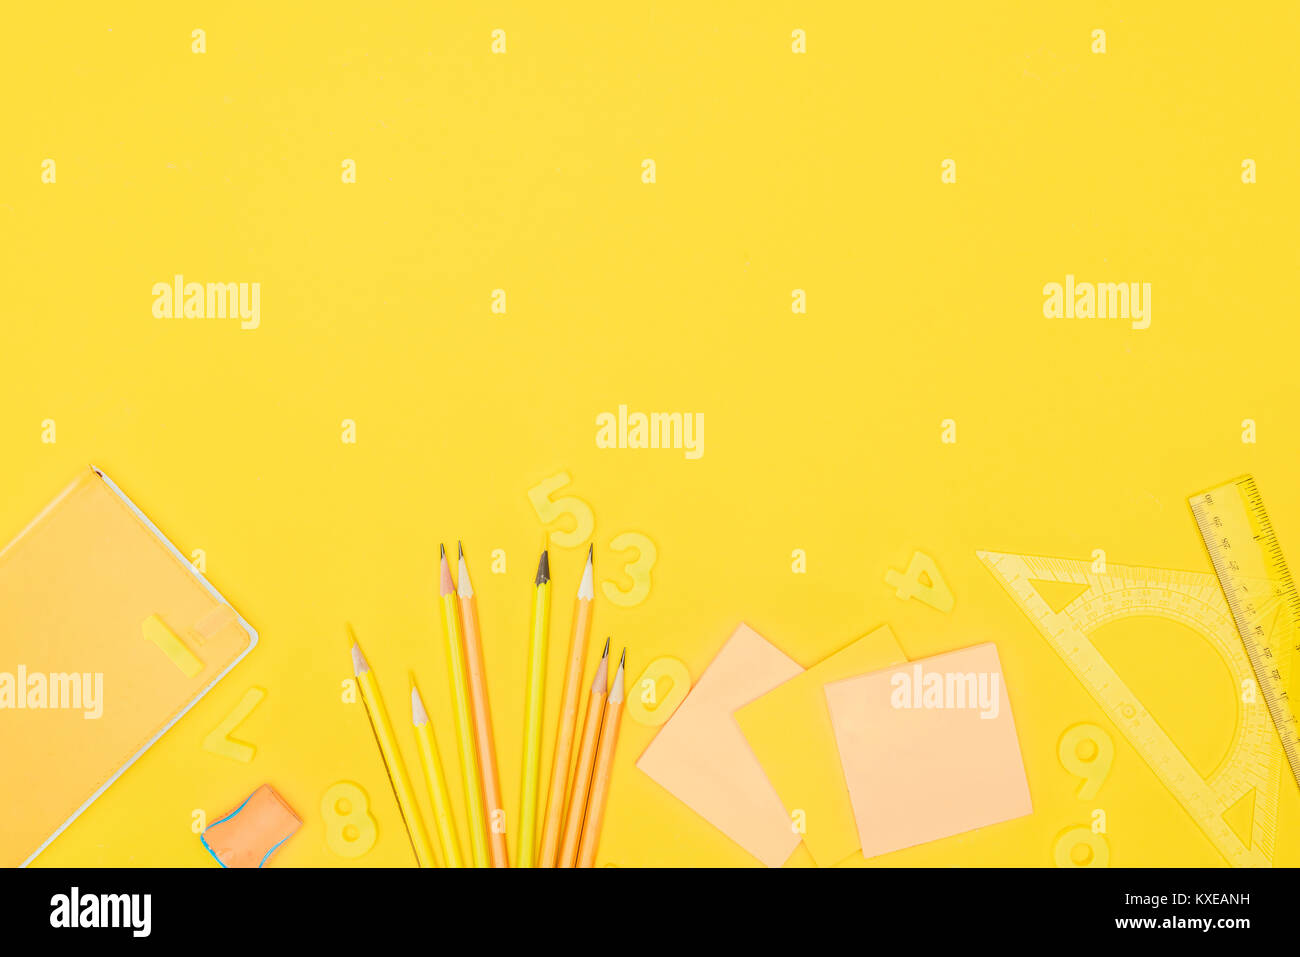 Top view of composition of colorful school supplies isolated on yellow background - Stock Image